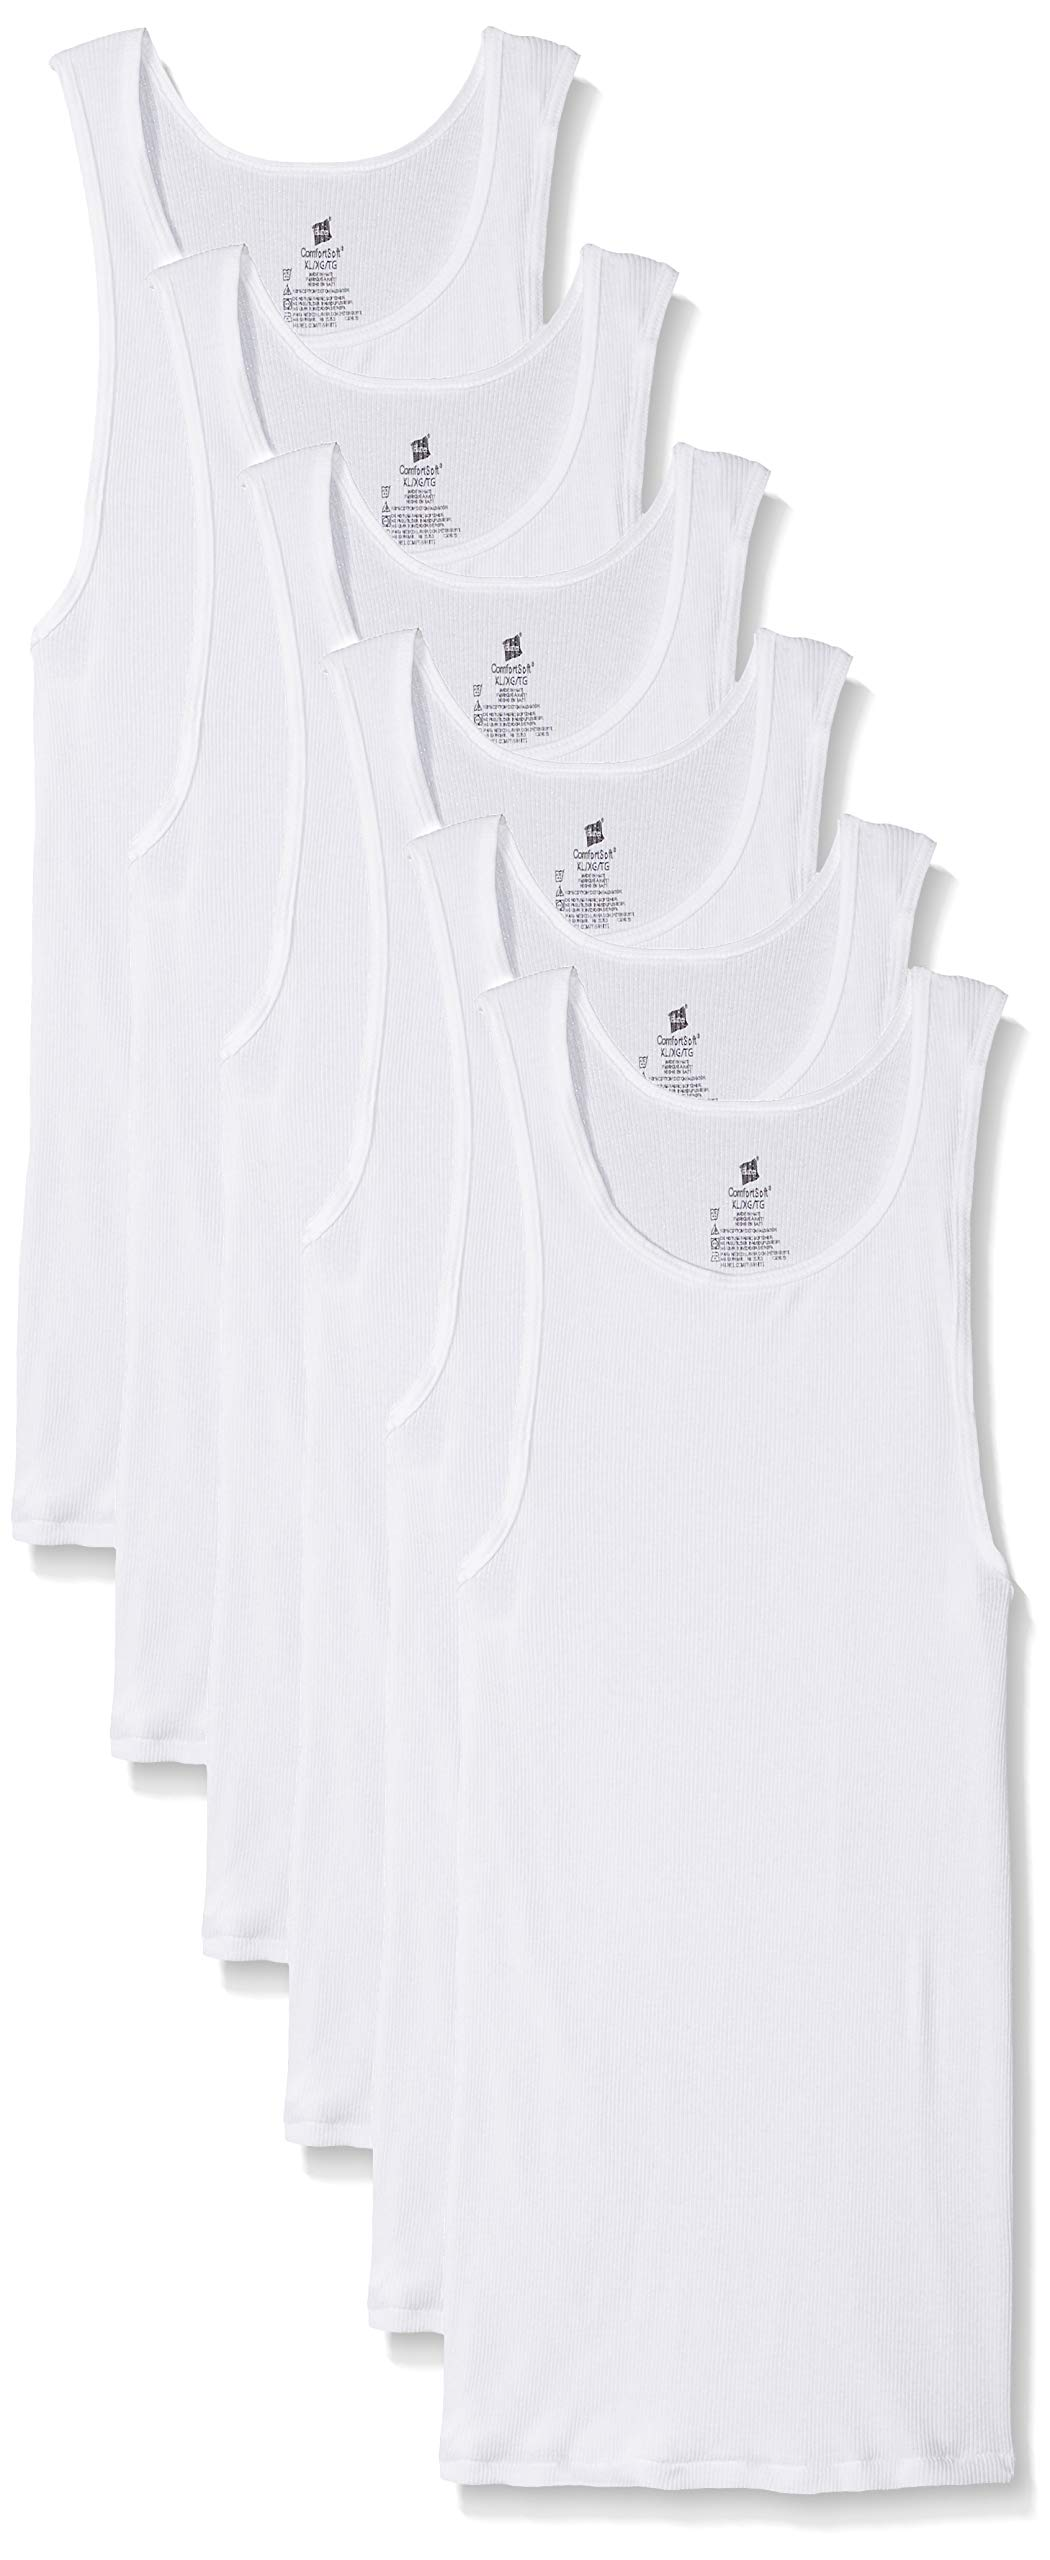 Hanes Men's Big and Tall Tank Tagless Fresh IQ Comfort Soft Ribbed A-Shirt 100% Cotton - 6 Pack XL Tall White by Hanes